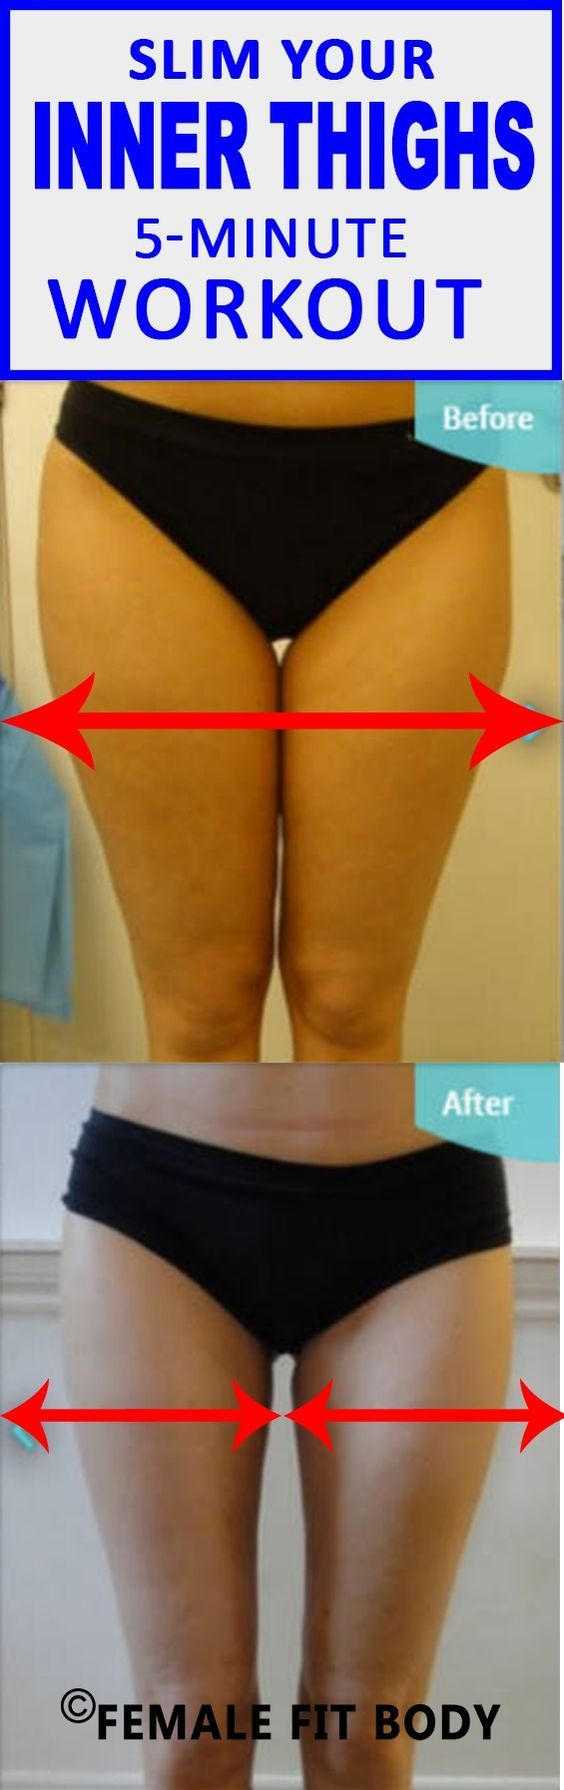 Forum on this topic: 5-Minute Thigh-Slimming Workout, 5-minute-thigh-slimming-workout/